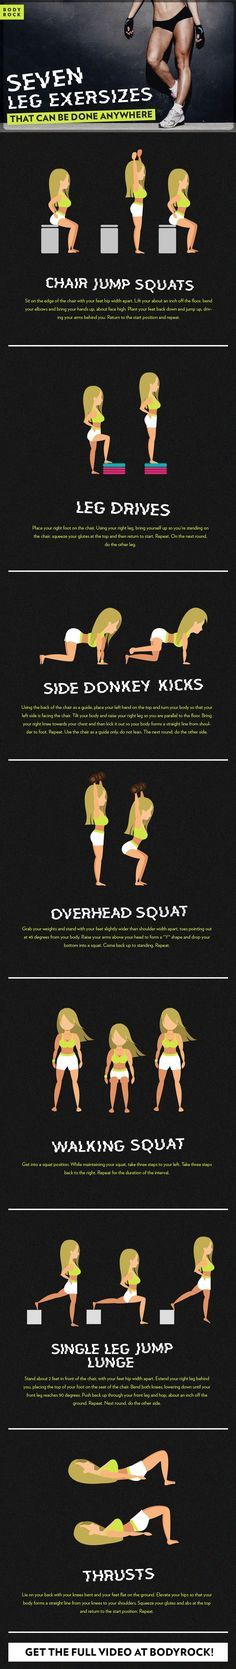 Check out these seve - http://www.beachbodycoach.com/sl47 http://www.beachbodycoach.com/sl47 Free Gym Membership Quotes & Locator 855-402-1258 Check out these seven leg exercises that can be done anywhere! Whether it's a… BodyRock Fitness http://47fitness.info/check-out-these-seve/